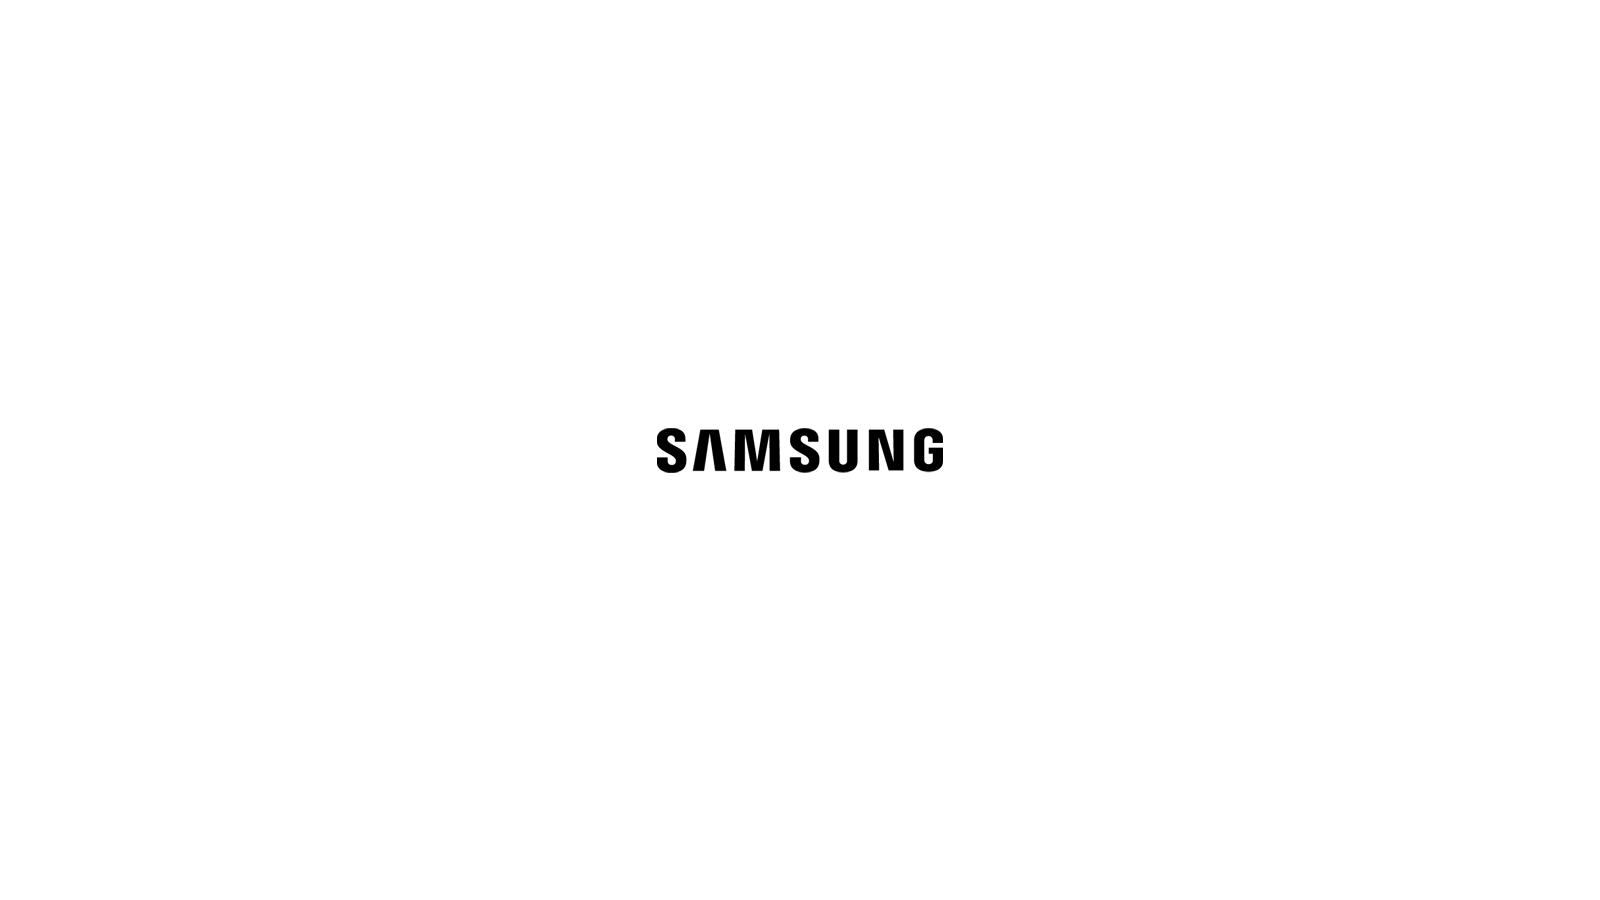 Samsung Global